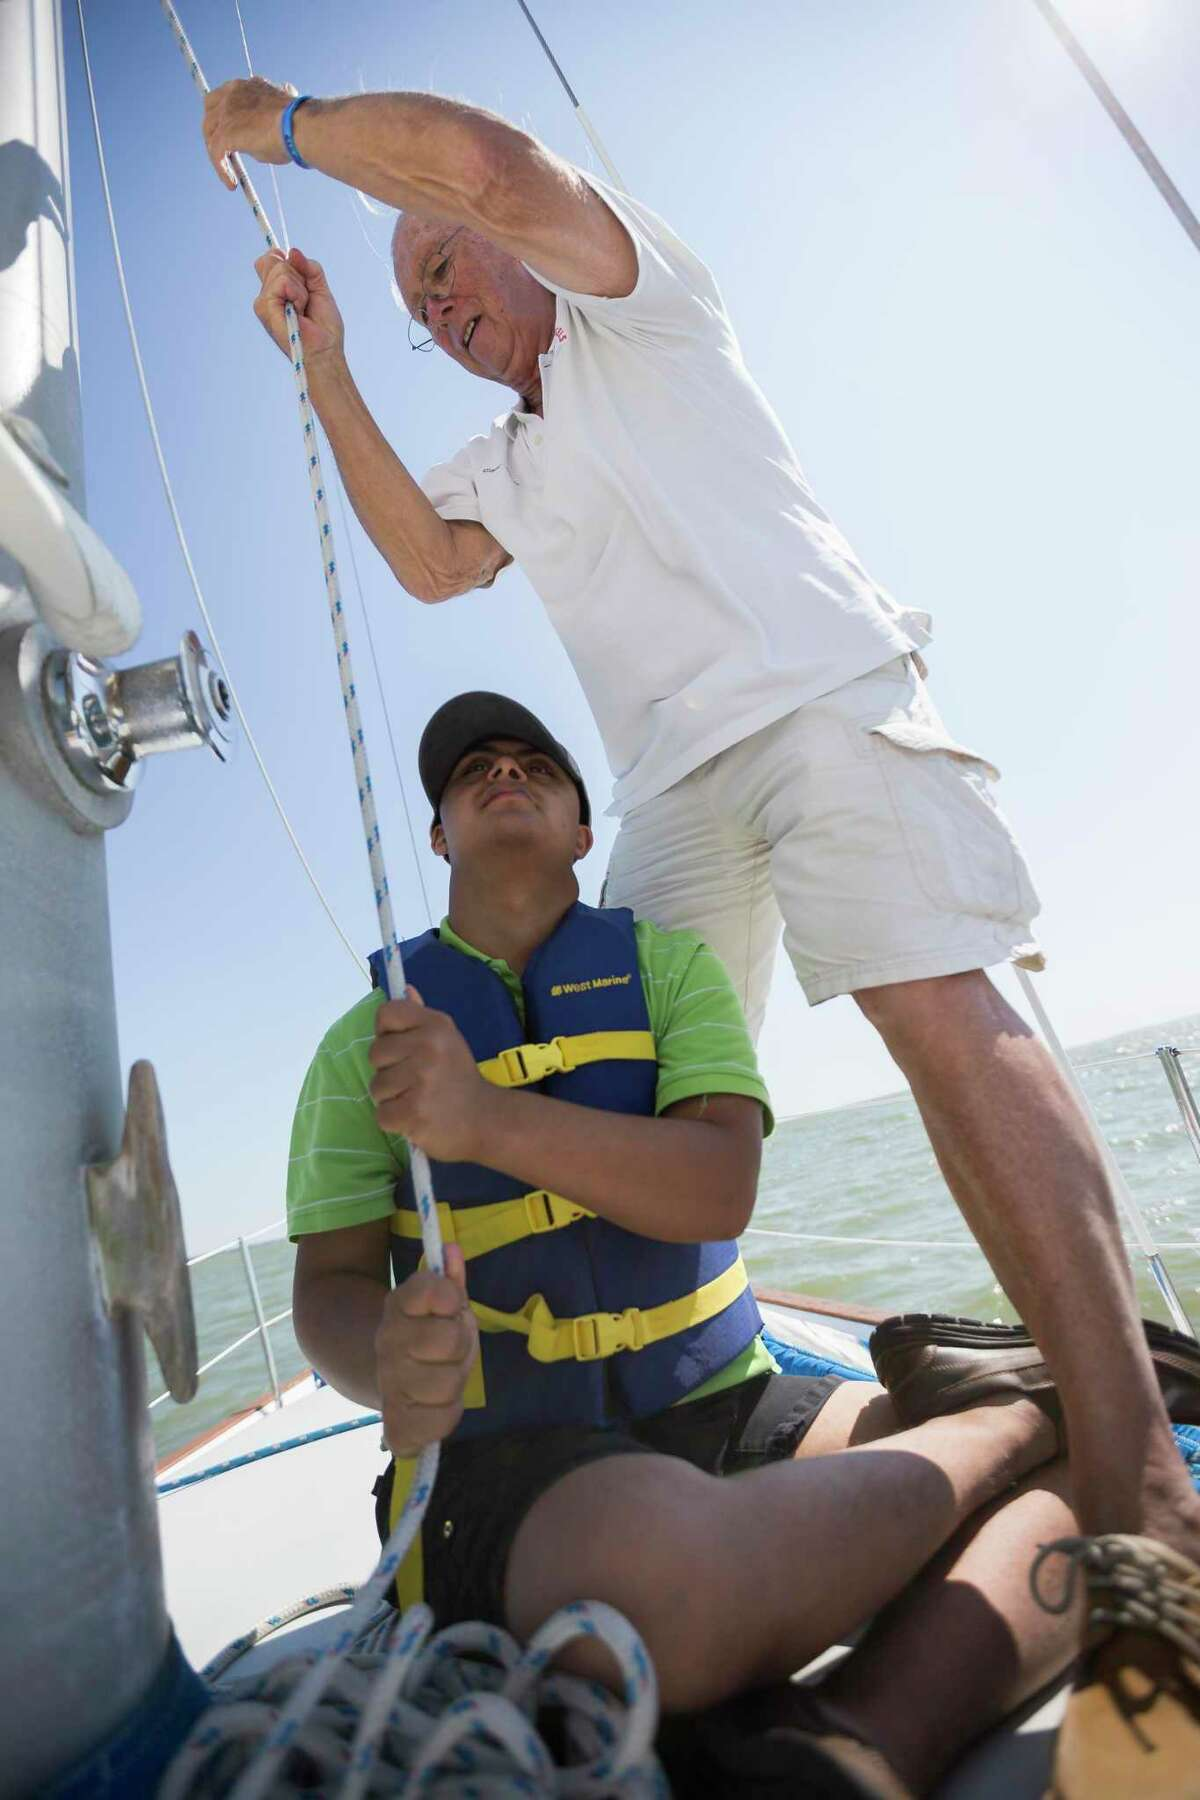 Rishi helps McCabe hoist a sail. All aboard work to the best of their ability in their time on the water.